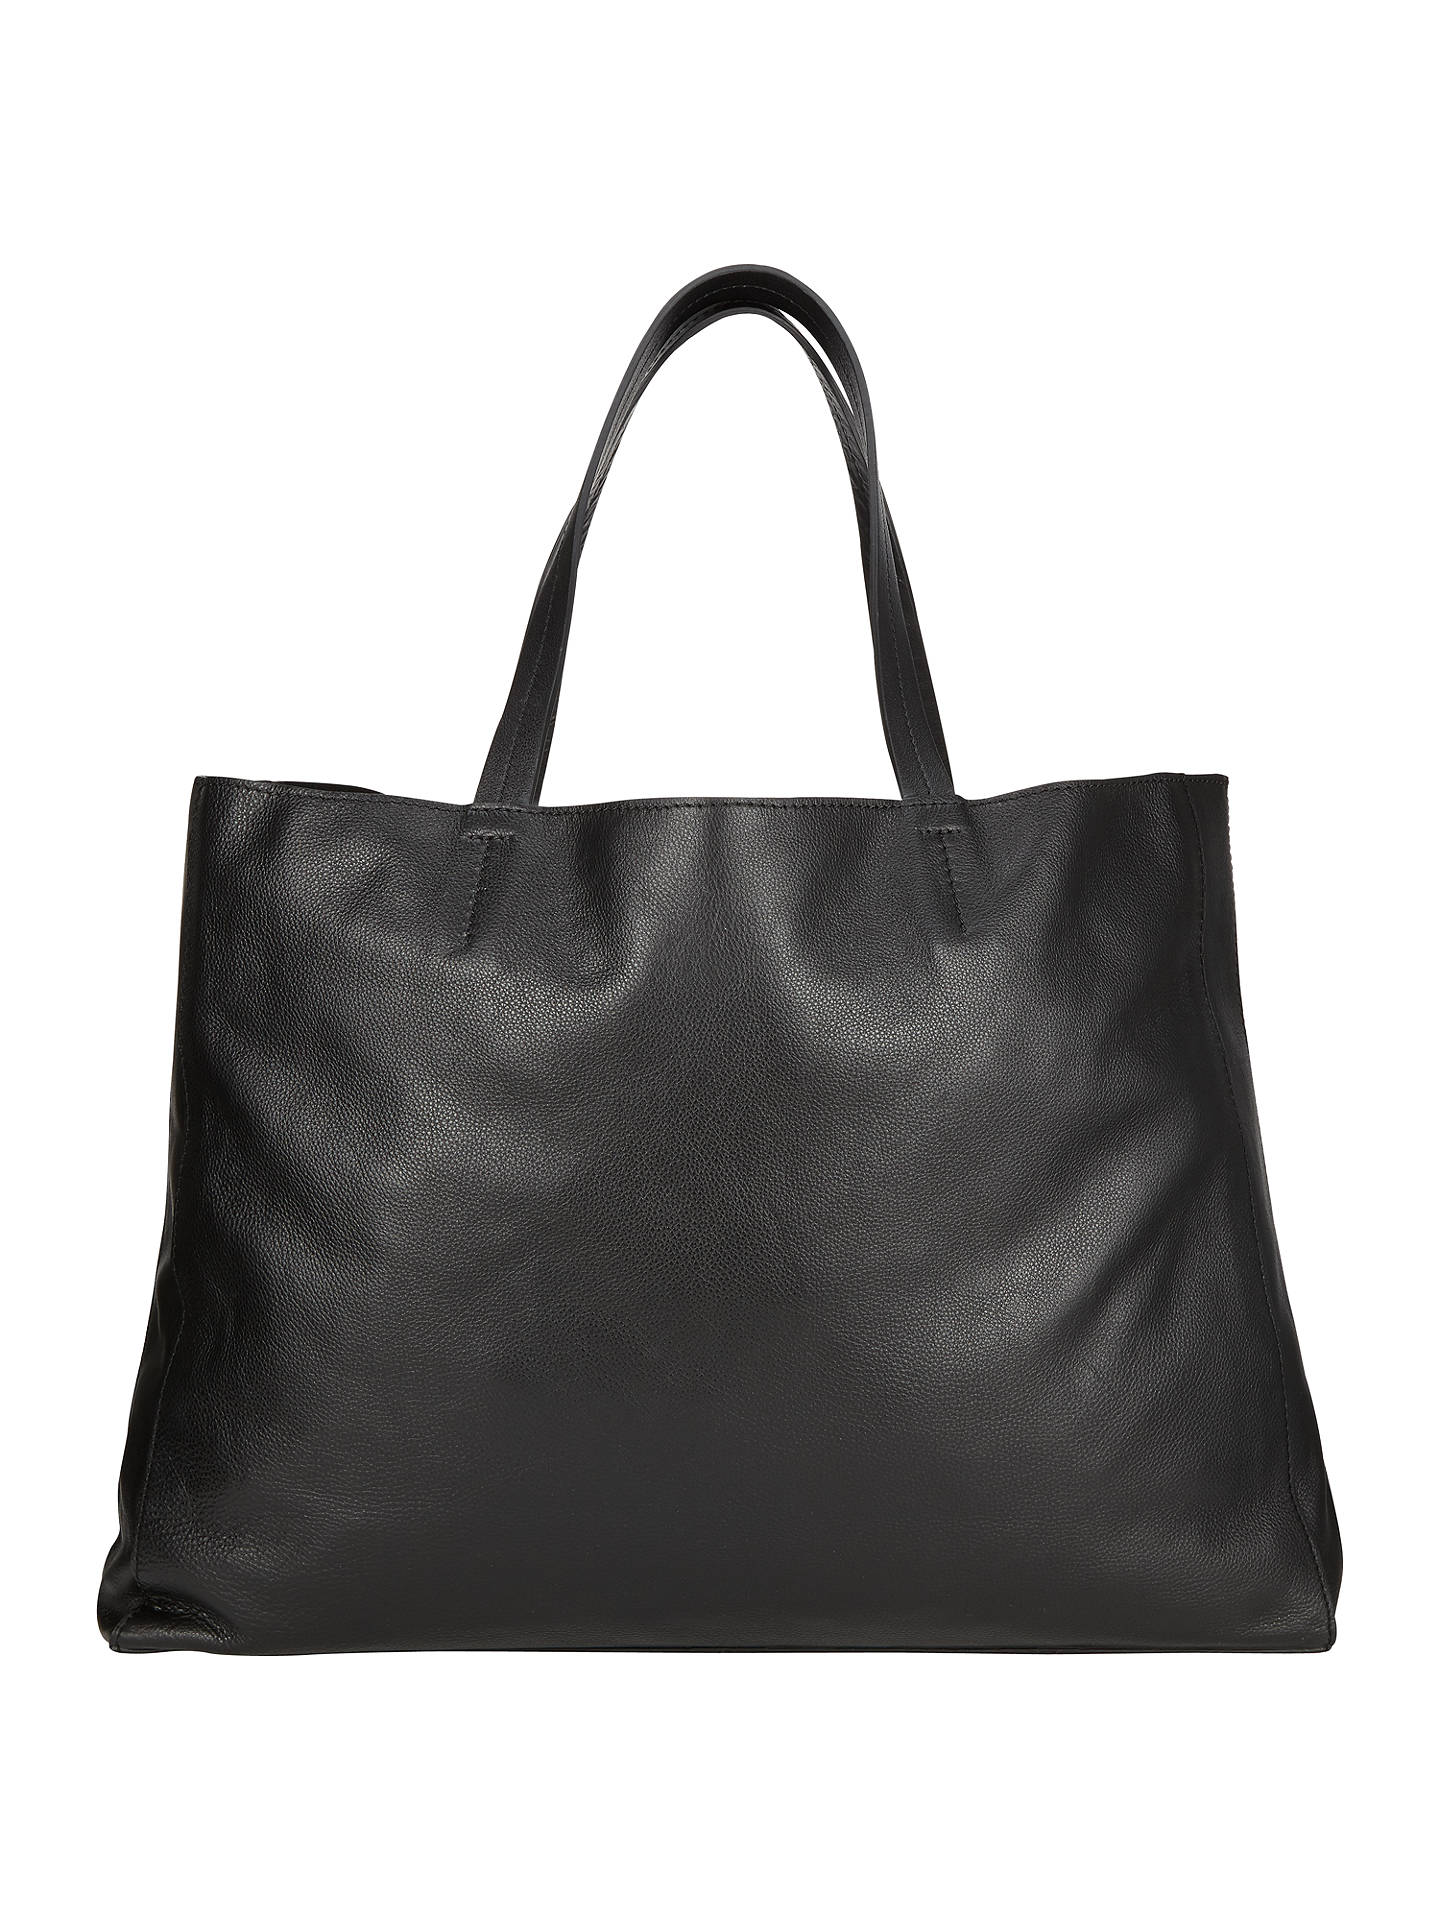 d9ad045a5b0 Buy Collection WEEKEND by John Lewis Morgan Raw Edge Leather Tote Bag,  Black Online at